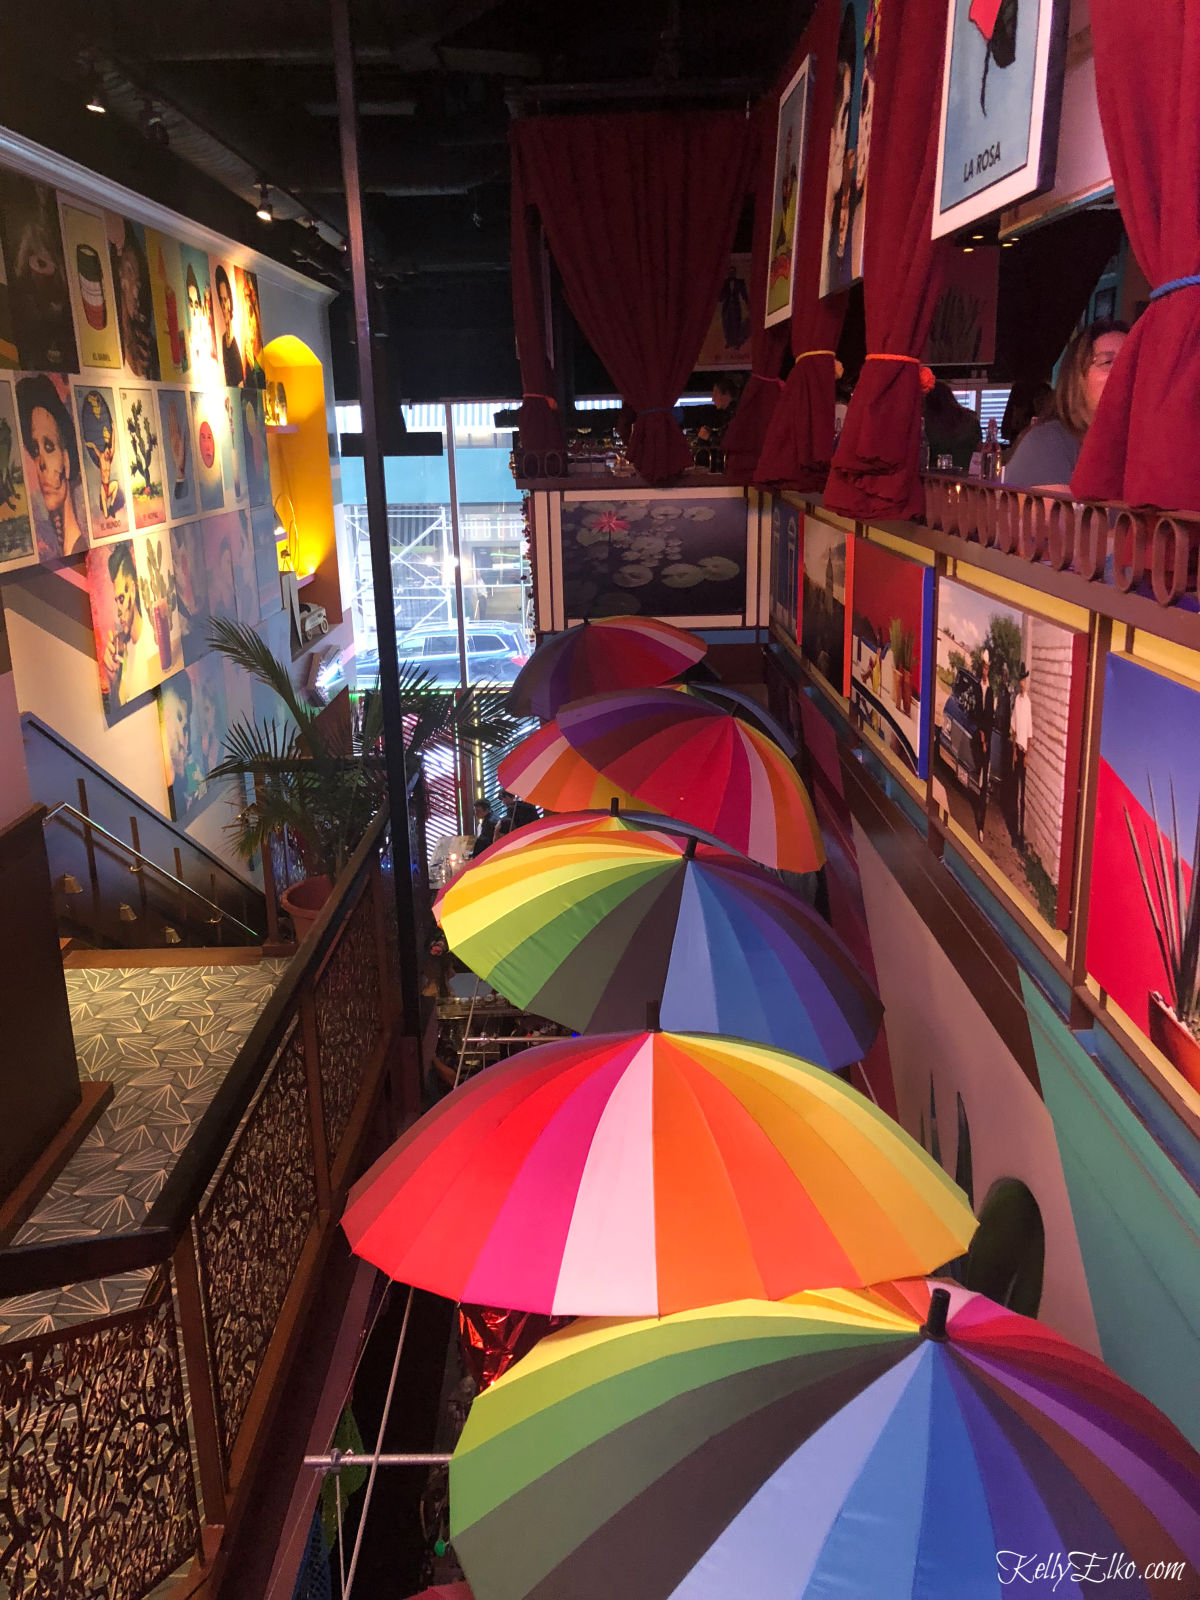 Love the colorful umbrellas in this Mexican restaurant kellyelko.com #colorlovers #colorful